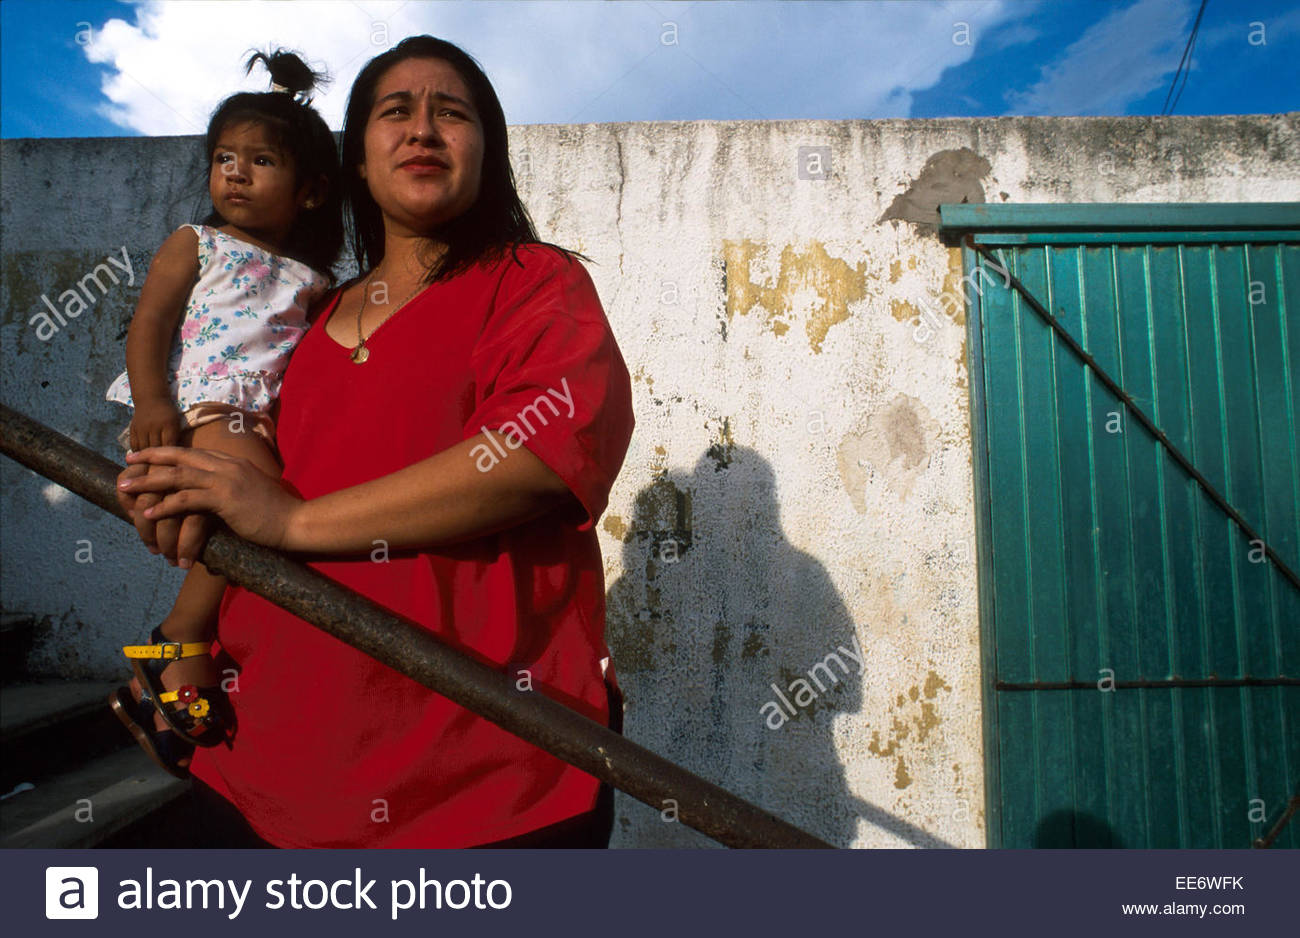 Mexcaltitan, Mother and child watching the basketball match Stock Photo